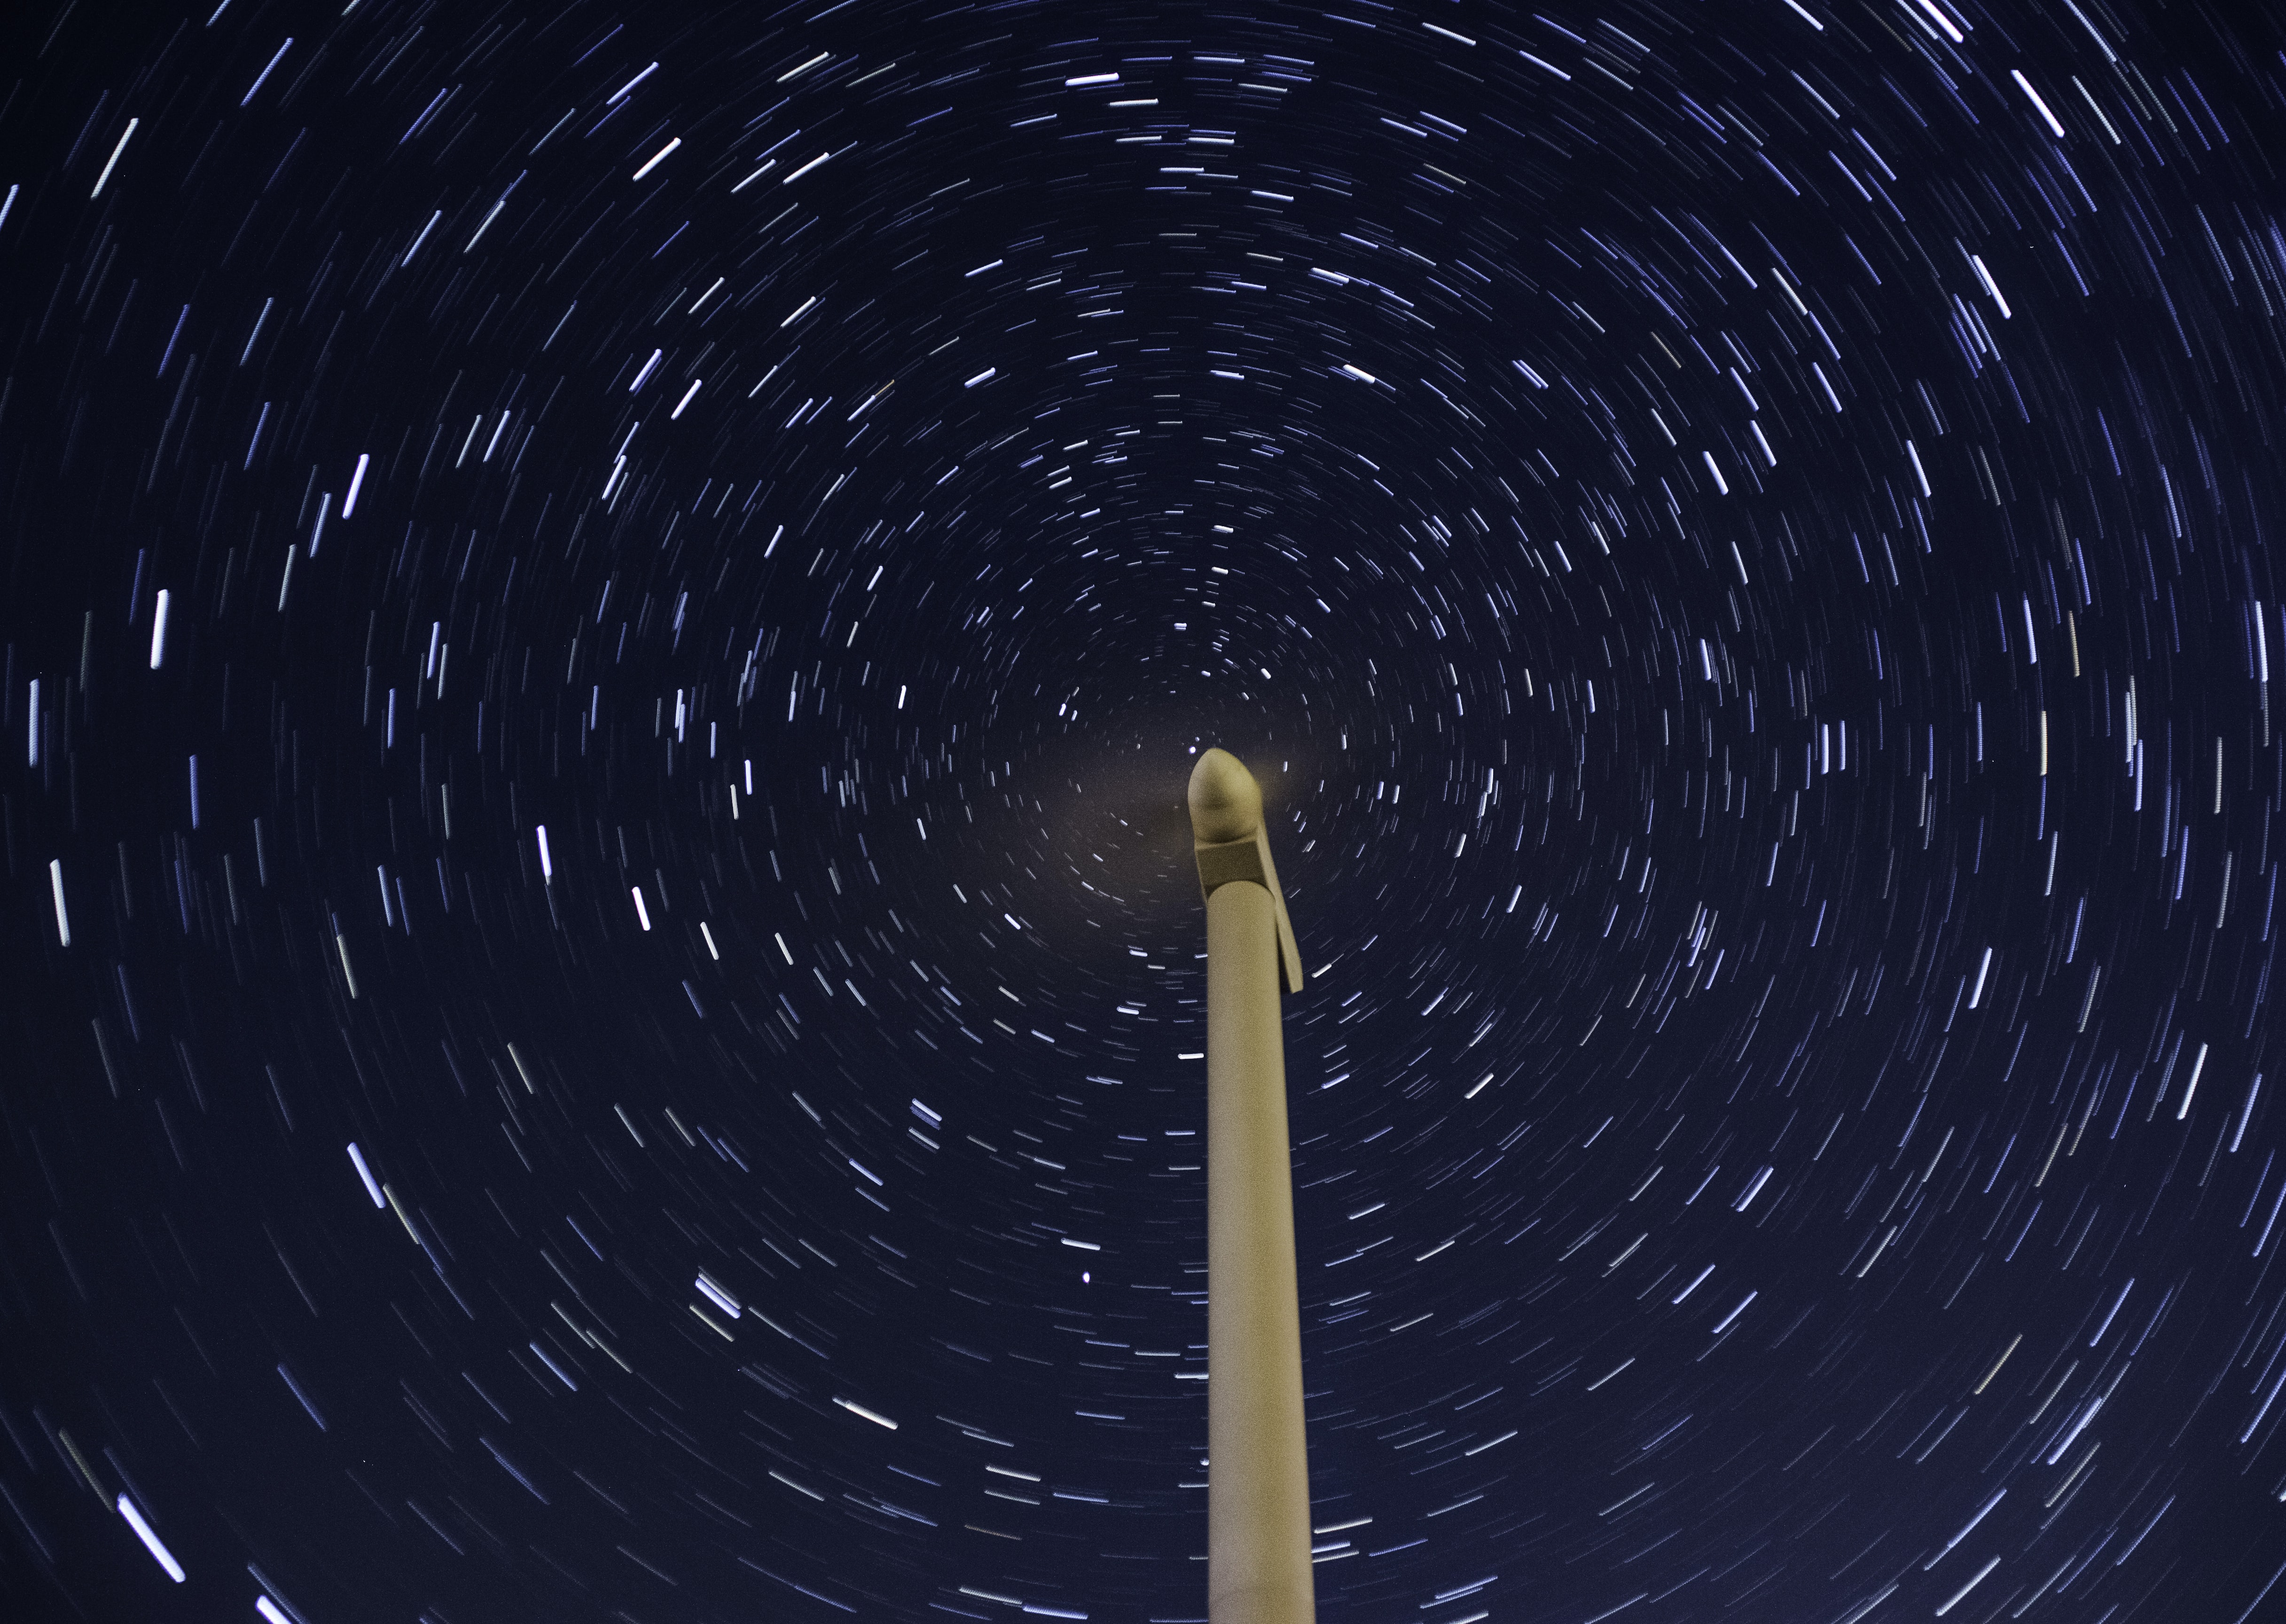 time-laps of stars and light post